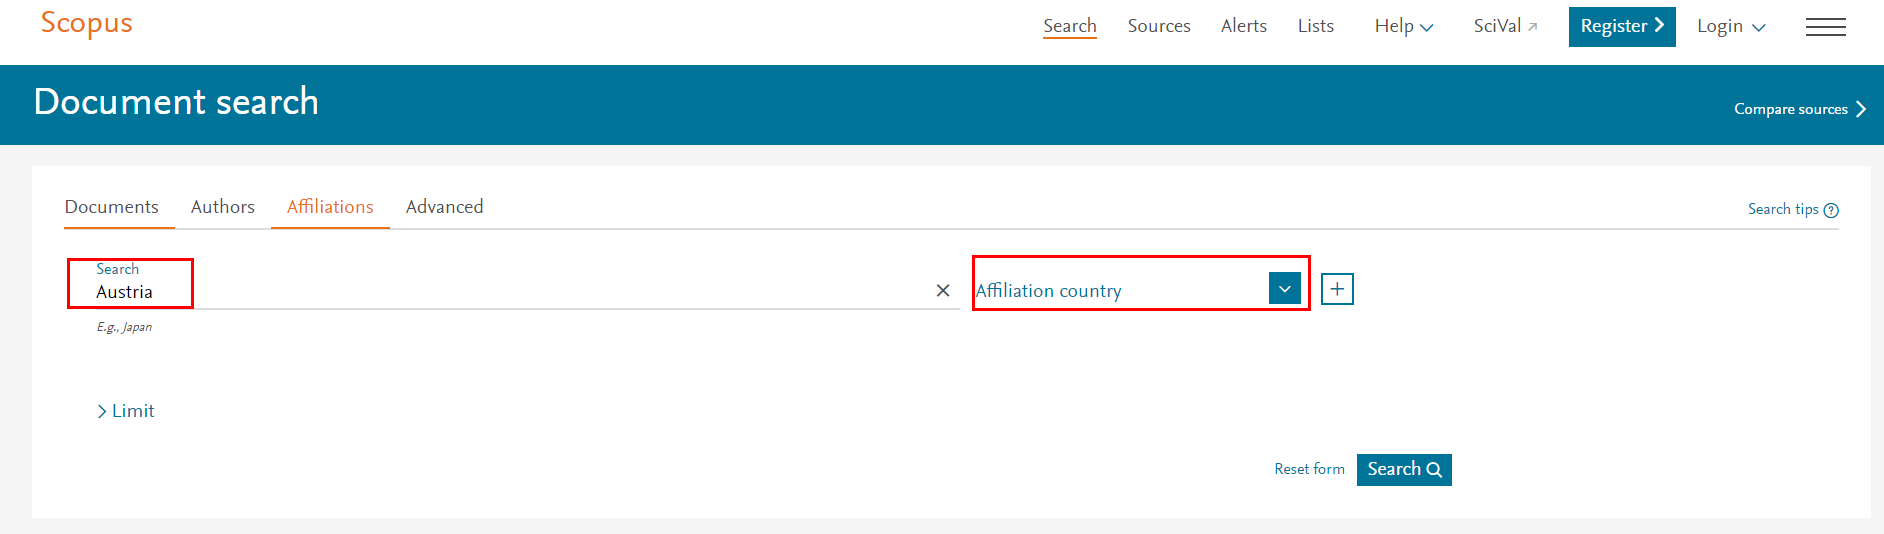 Figure 1 Search for a country's publications